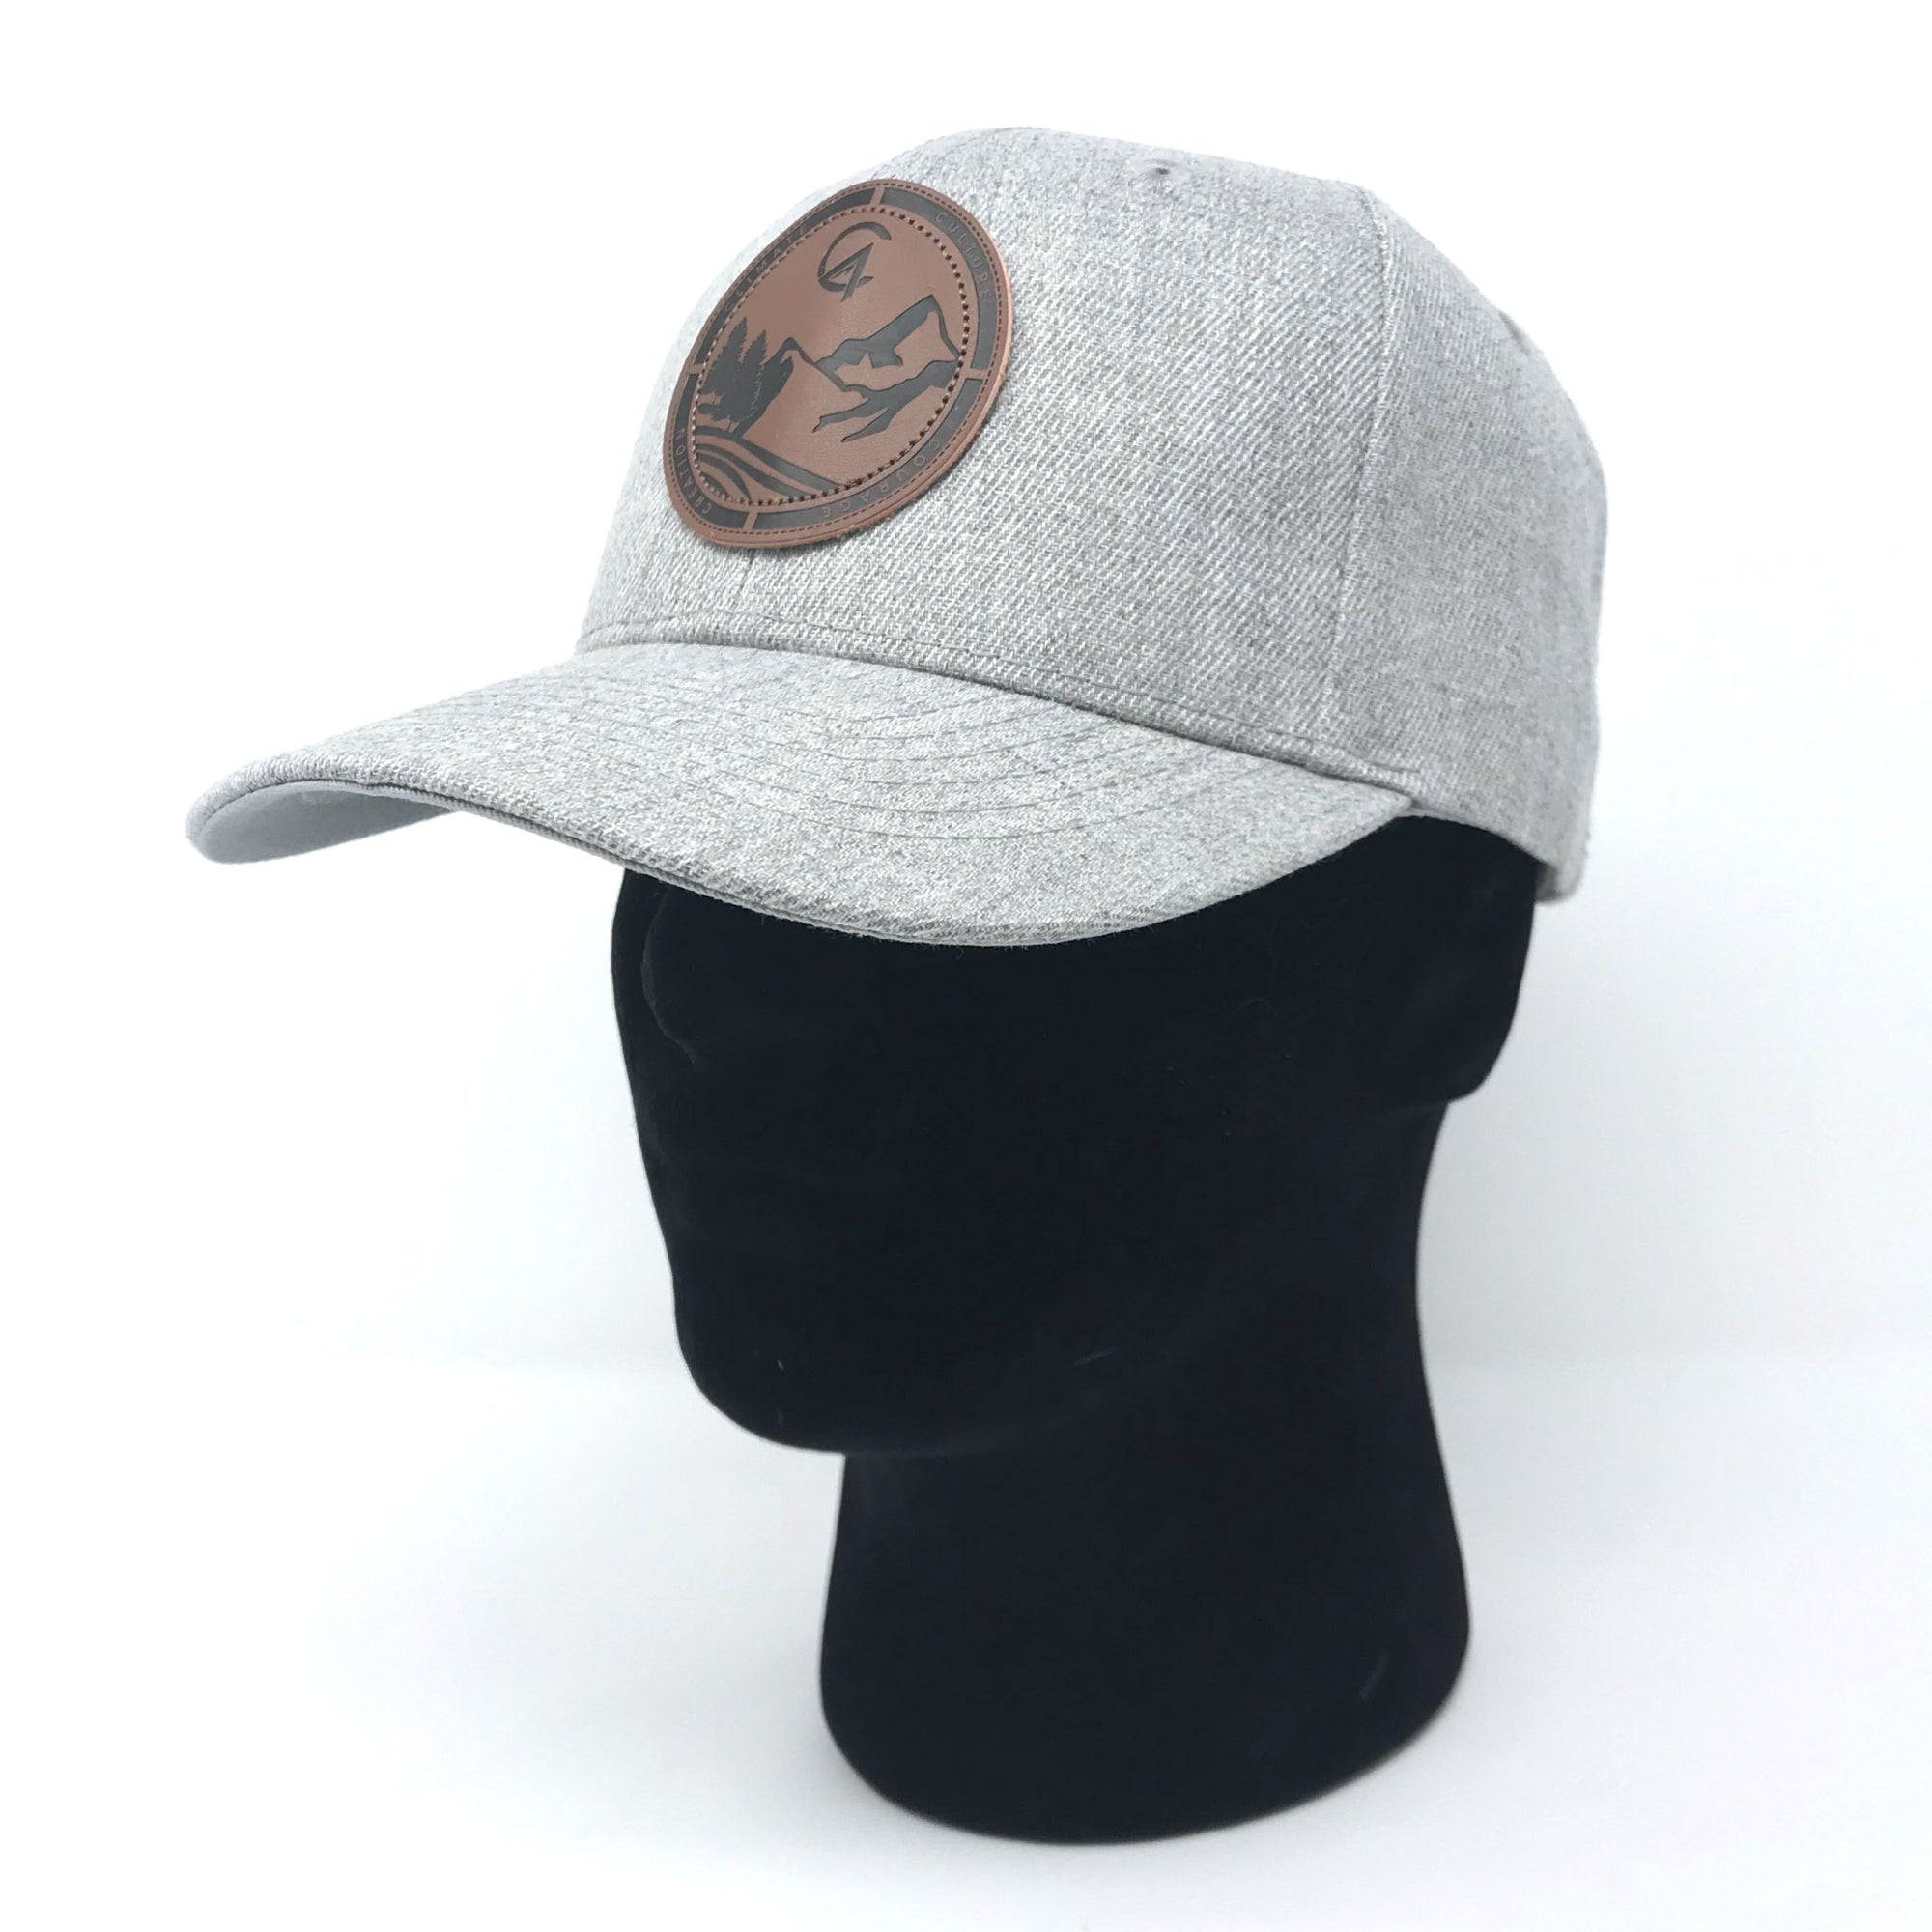 Heather Grey C4 Burned Copacetic Patch Hat - Care Four